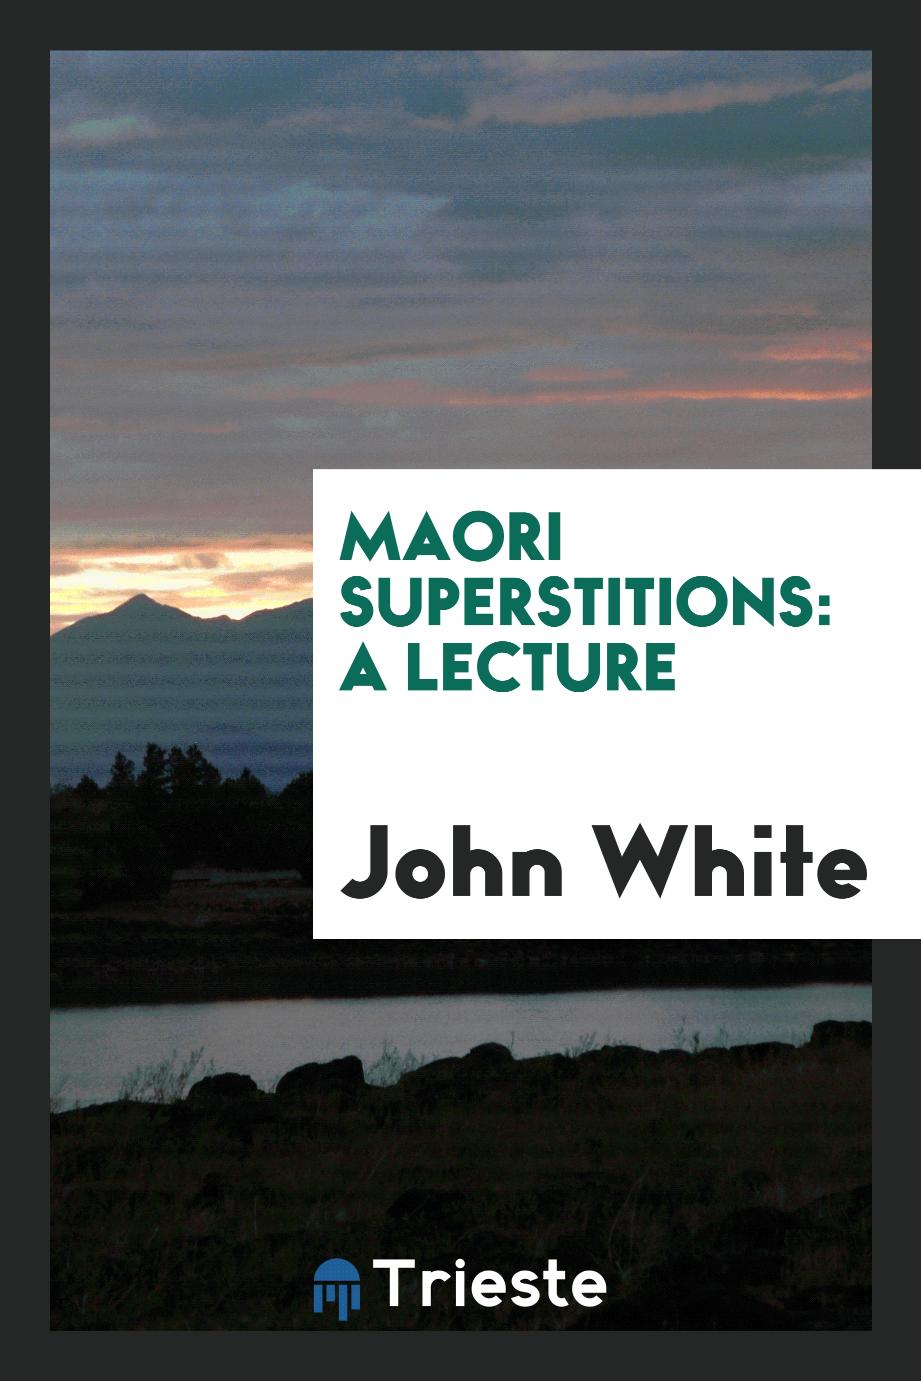 Maori Superstitions: A Lecture